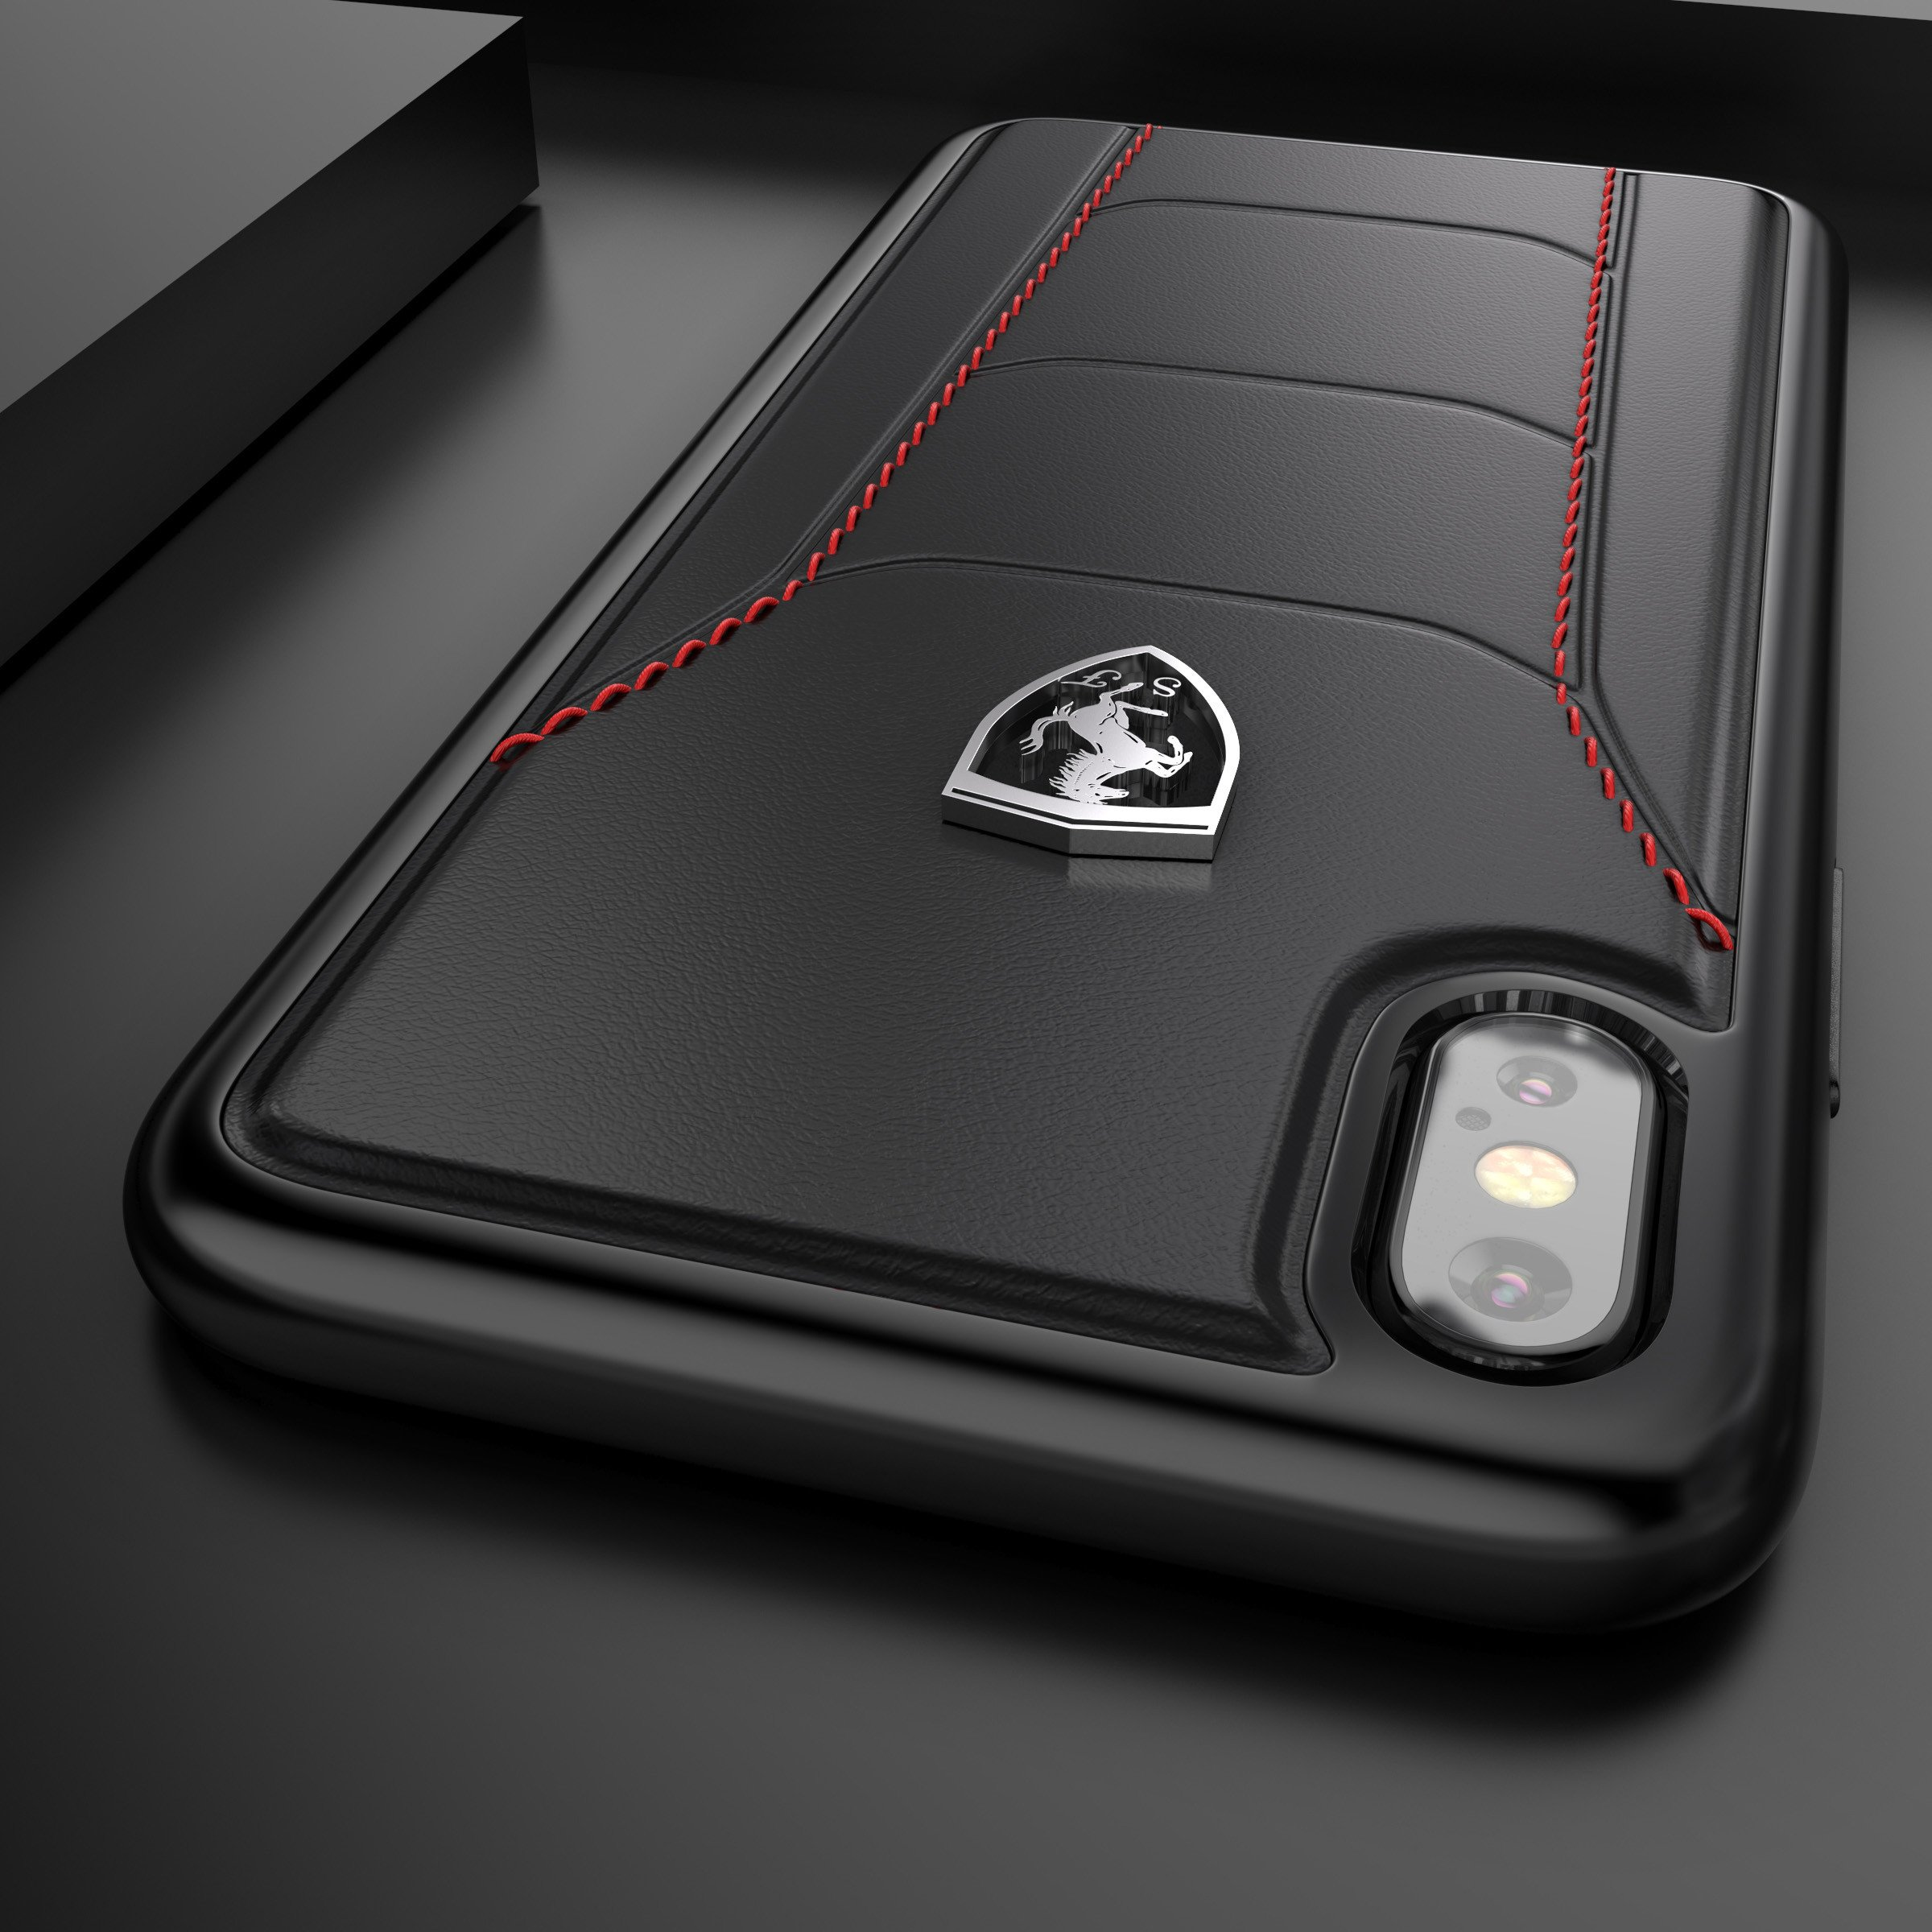 sports shoes eef7e 72f5e Ferrari ® Apple iPhone XS Official 488 GTB Logo Double Stitched  Dual-Material Pure Leather Back Cover